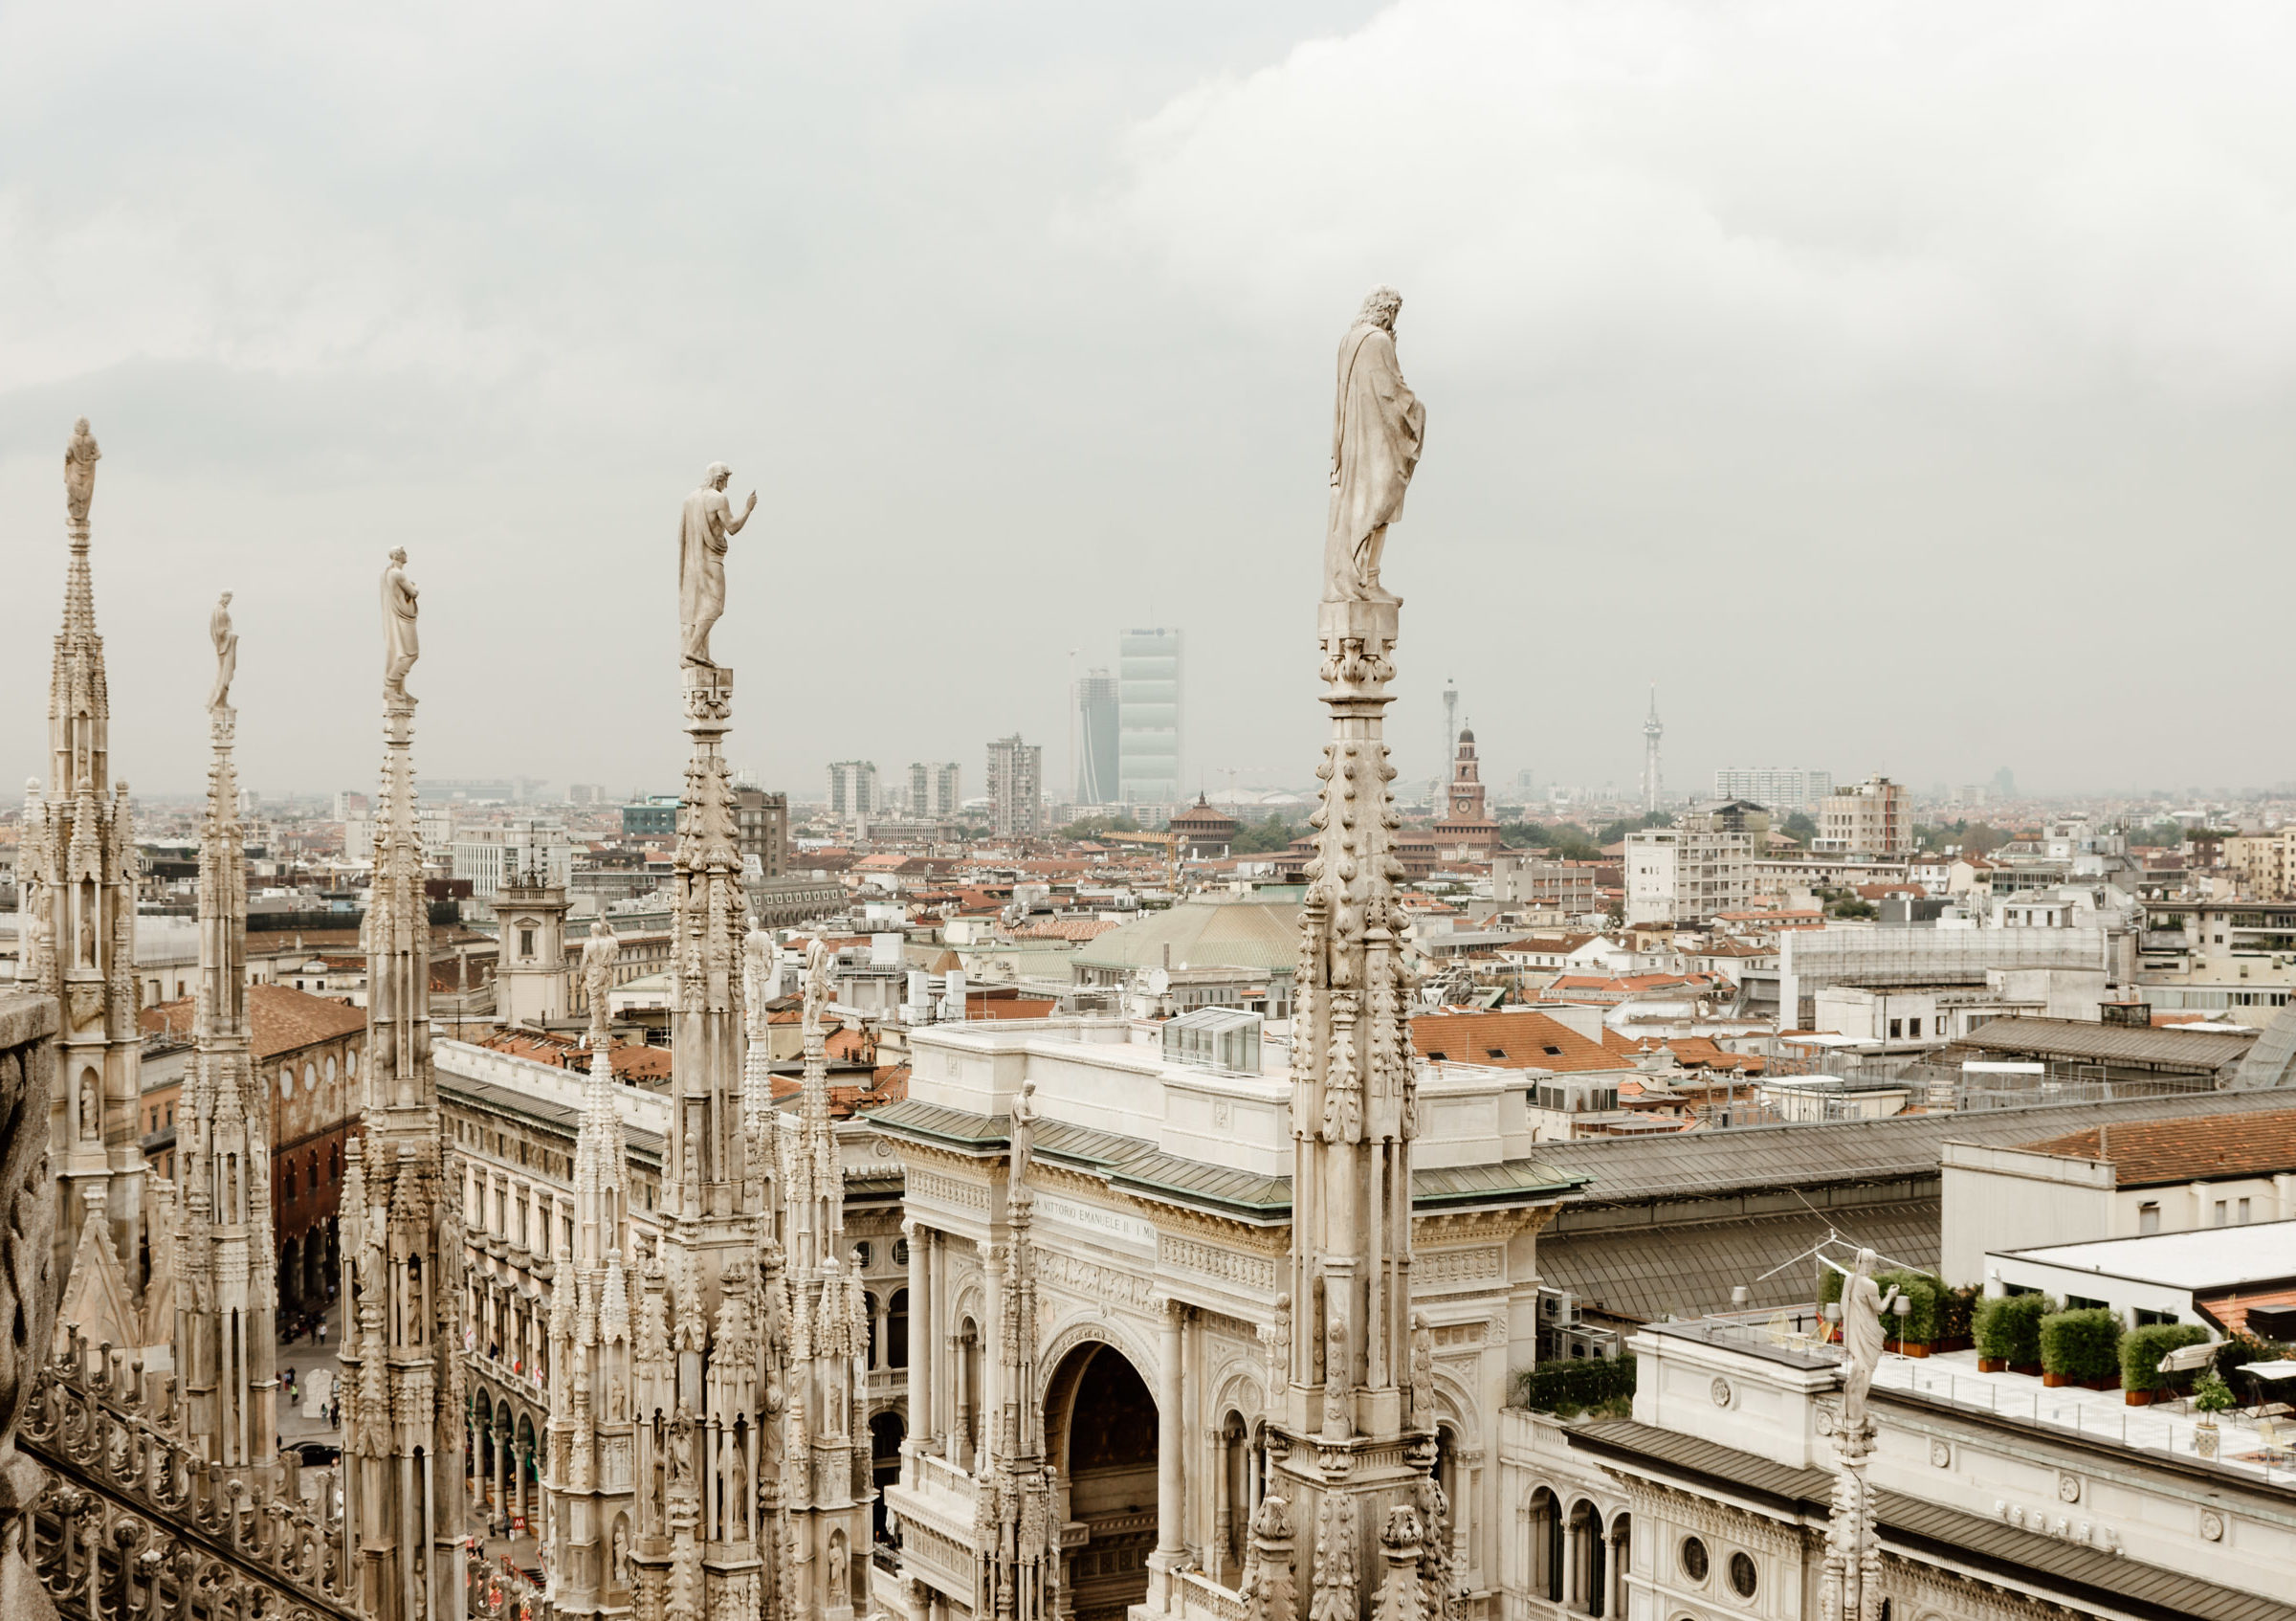 Lombardy - the most beautiful photos from Italy